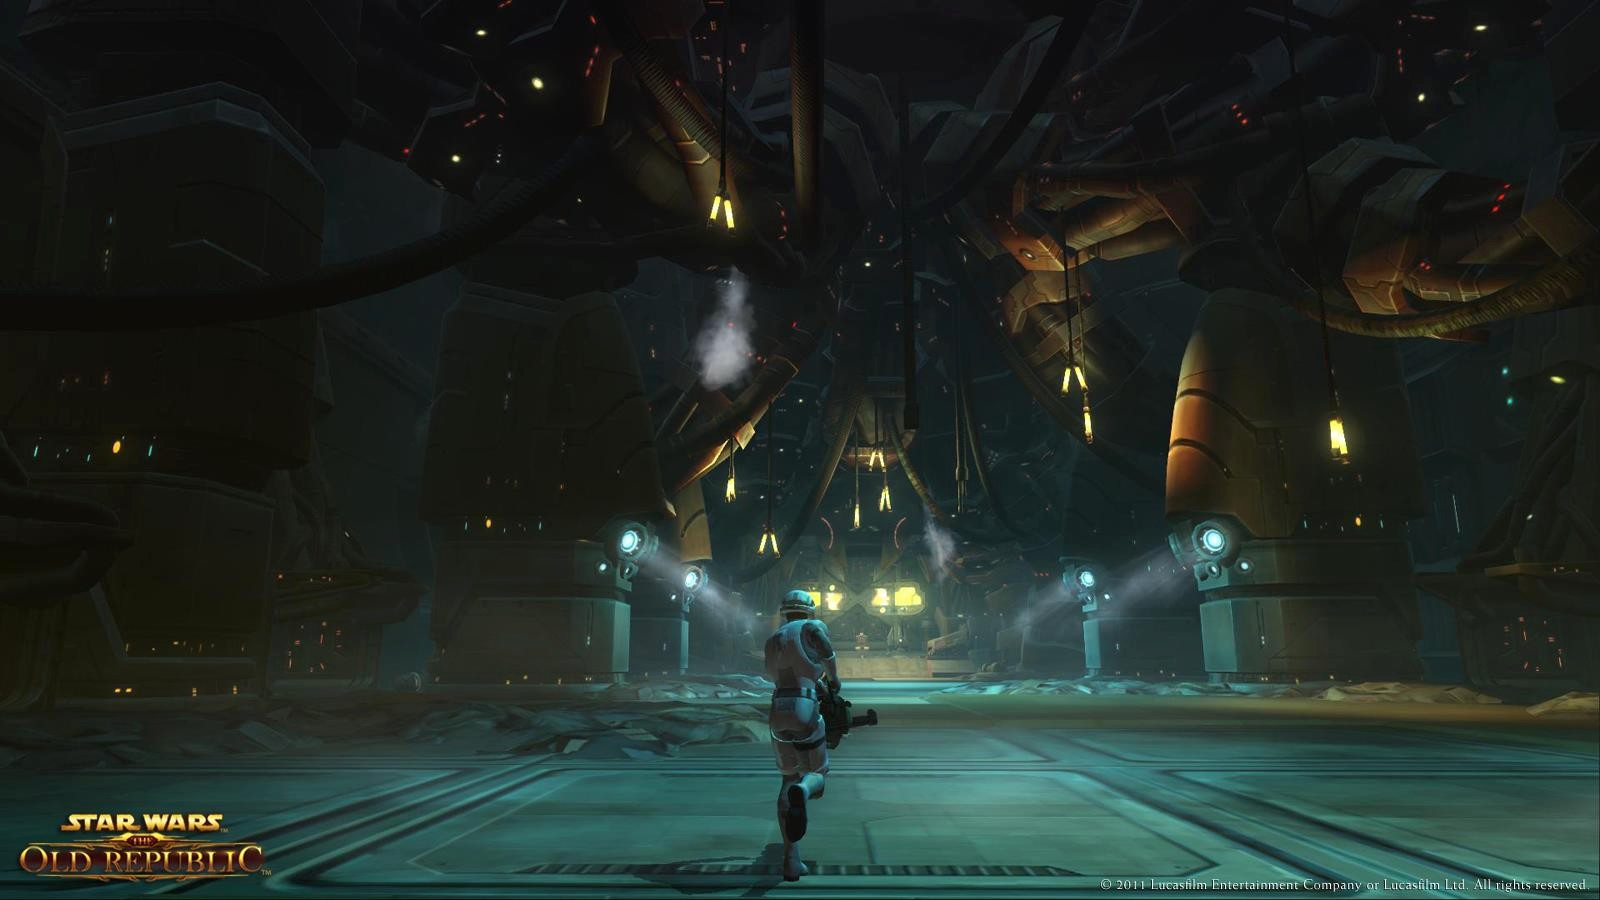 Star Wars: The Old Republic - A lone Trooper storms towards the command center deep inside The Gormak Kings Hall.